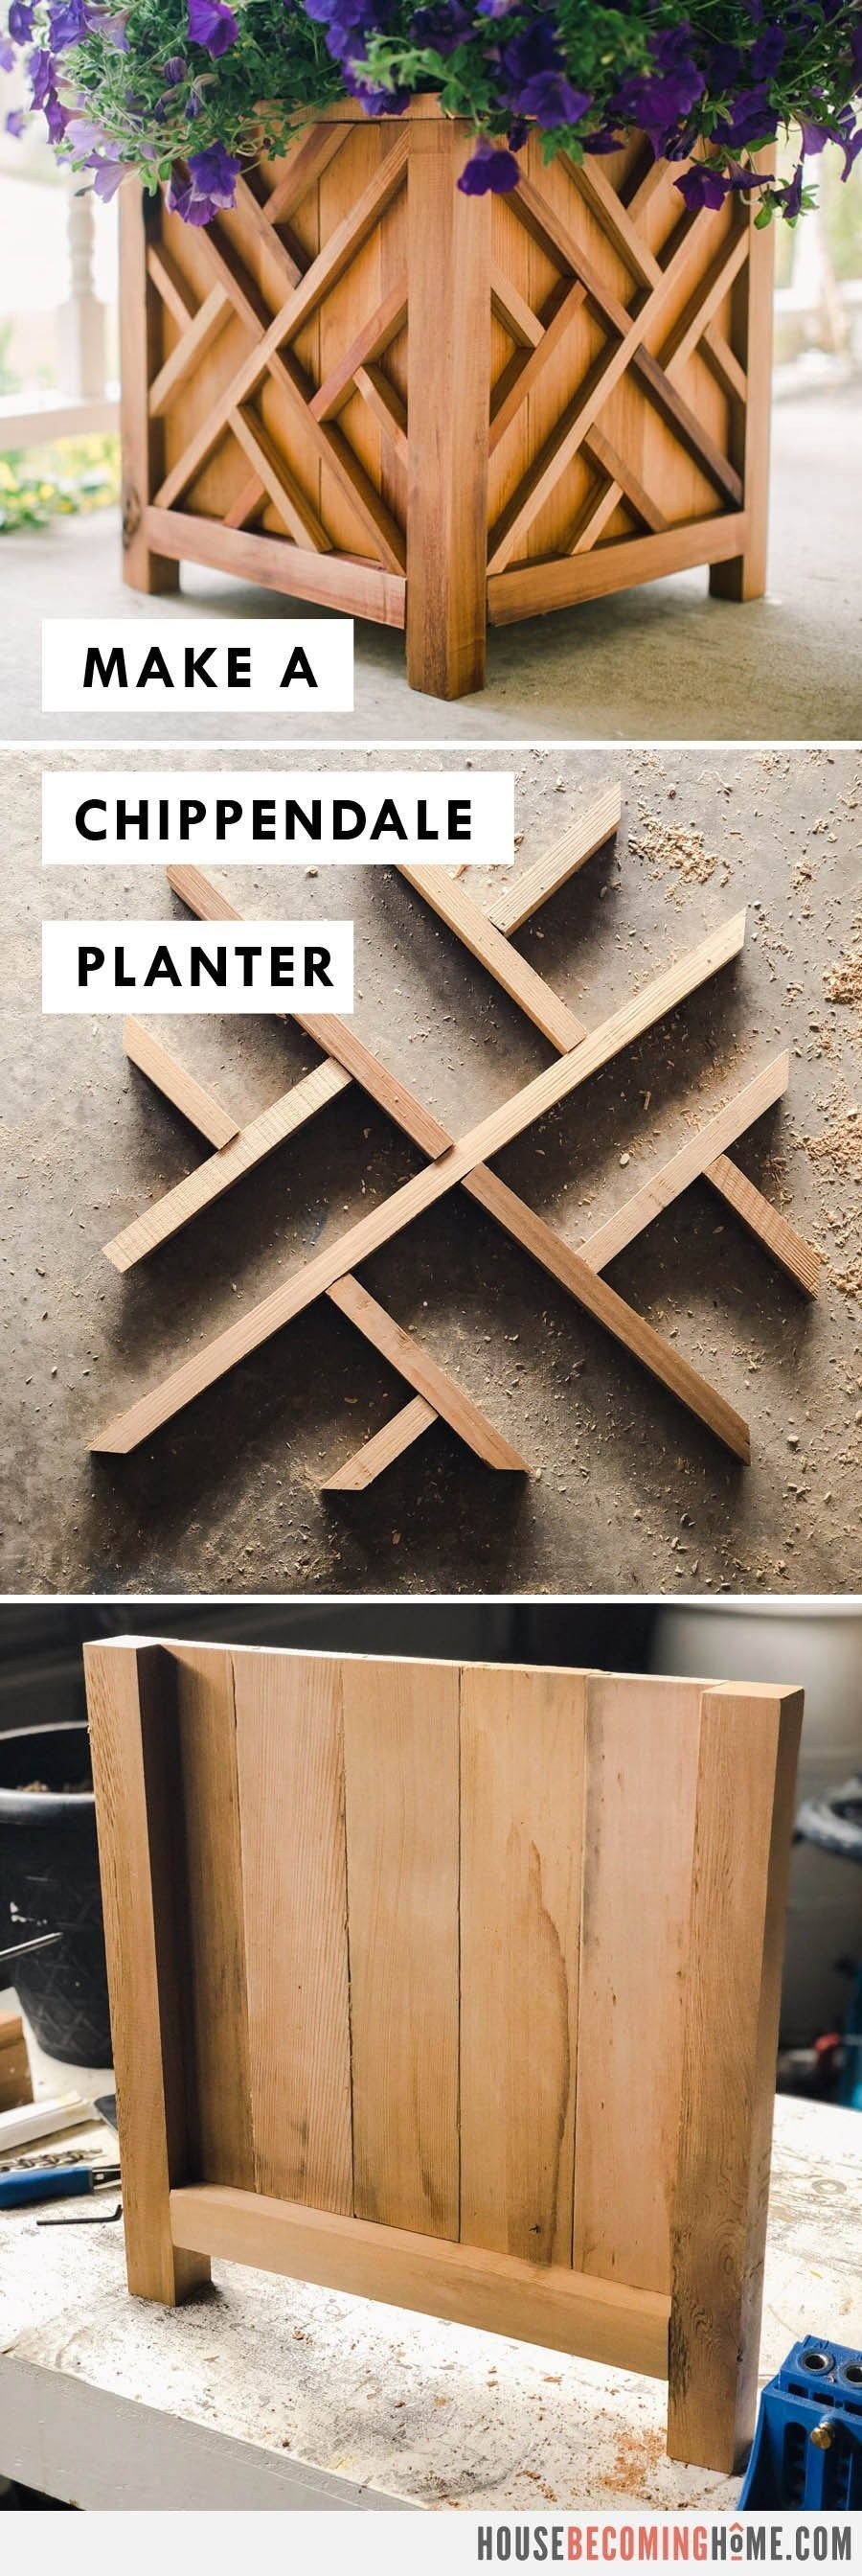 DIY Chippendale Planter - House Becoming Home